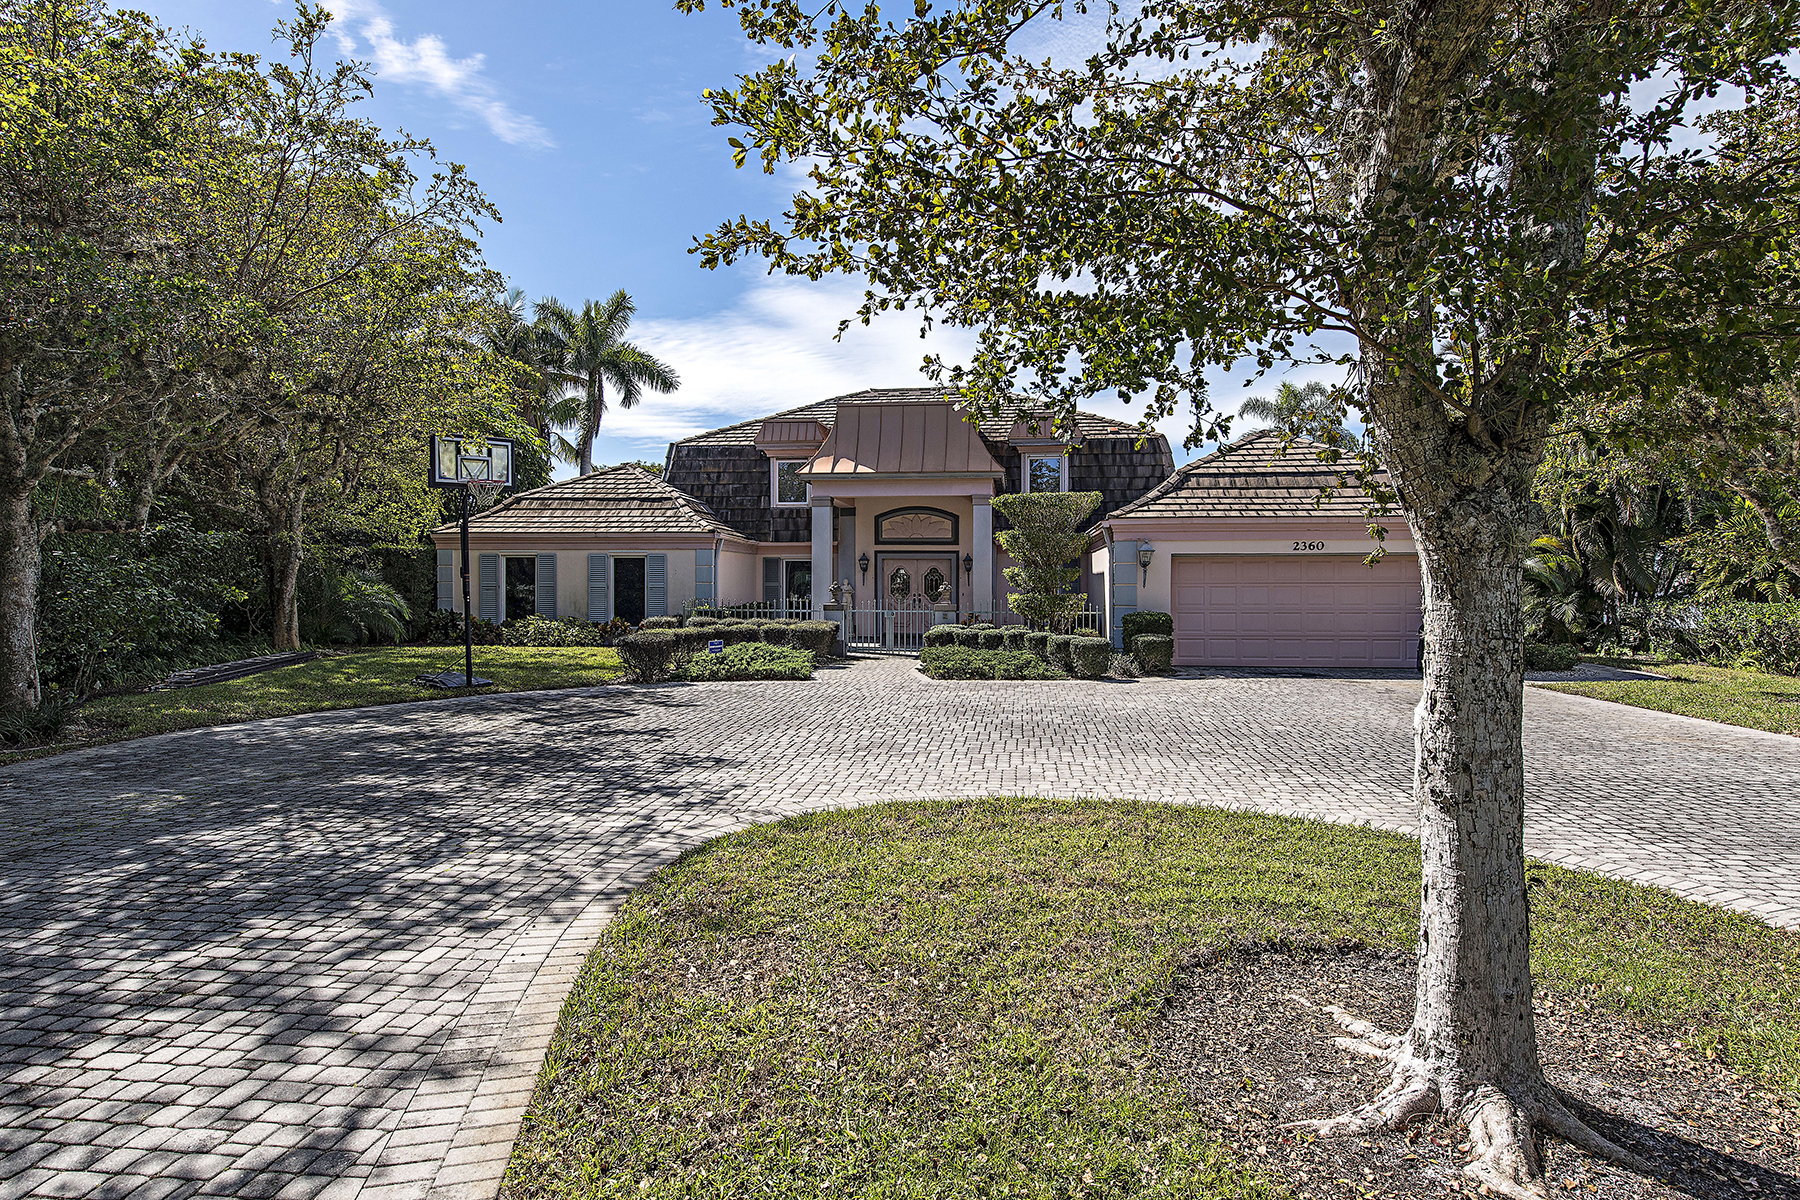 Single Family Home for Sale at ROYAL HARBOR 2360 Kingfish Rd, Naples, Florida 34102 United States